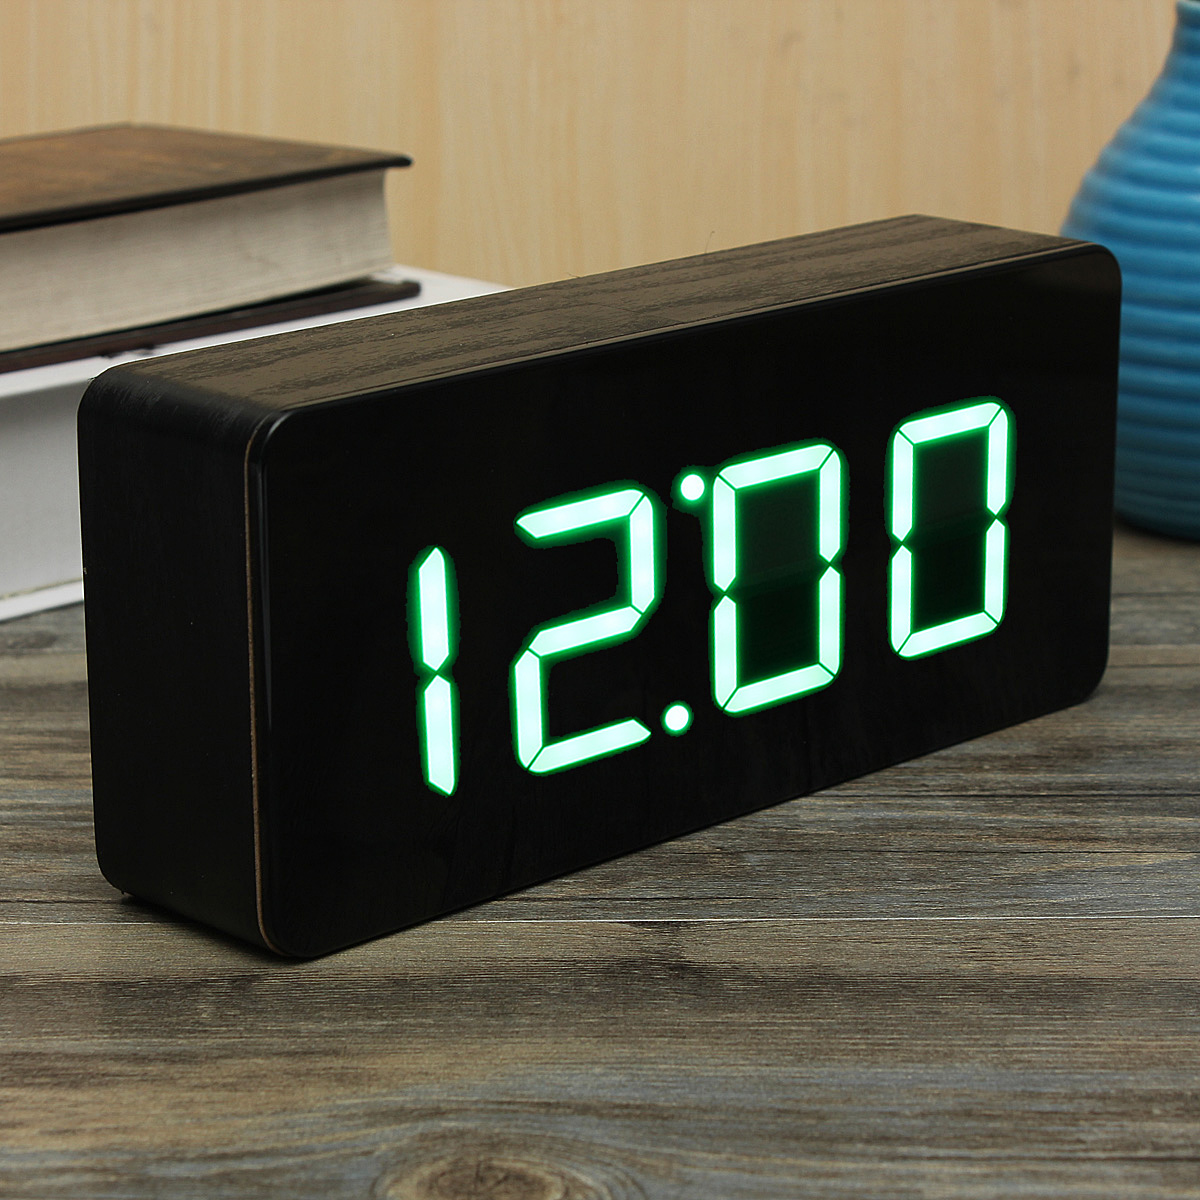 Wecker Digital Kind Acryl Spiegel Wooden Holz Digital Led Wecker Clock Uhr